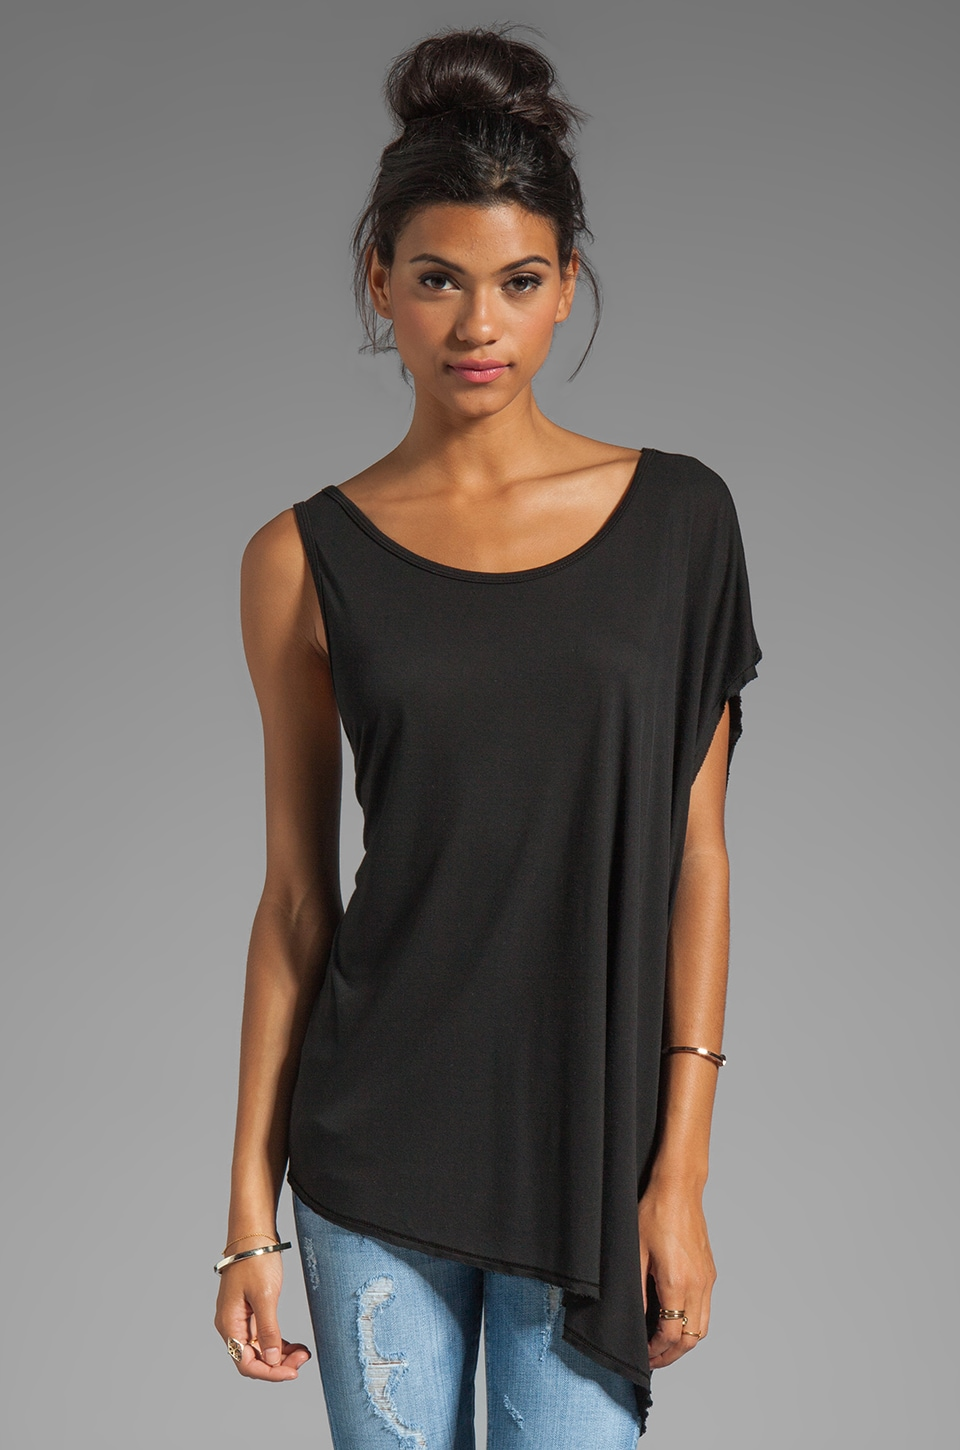 Michael Lauren Asymmetrical Sleeve Top in Black